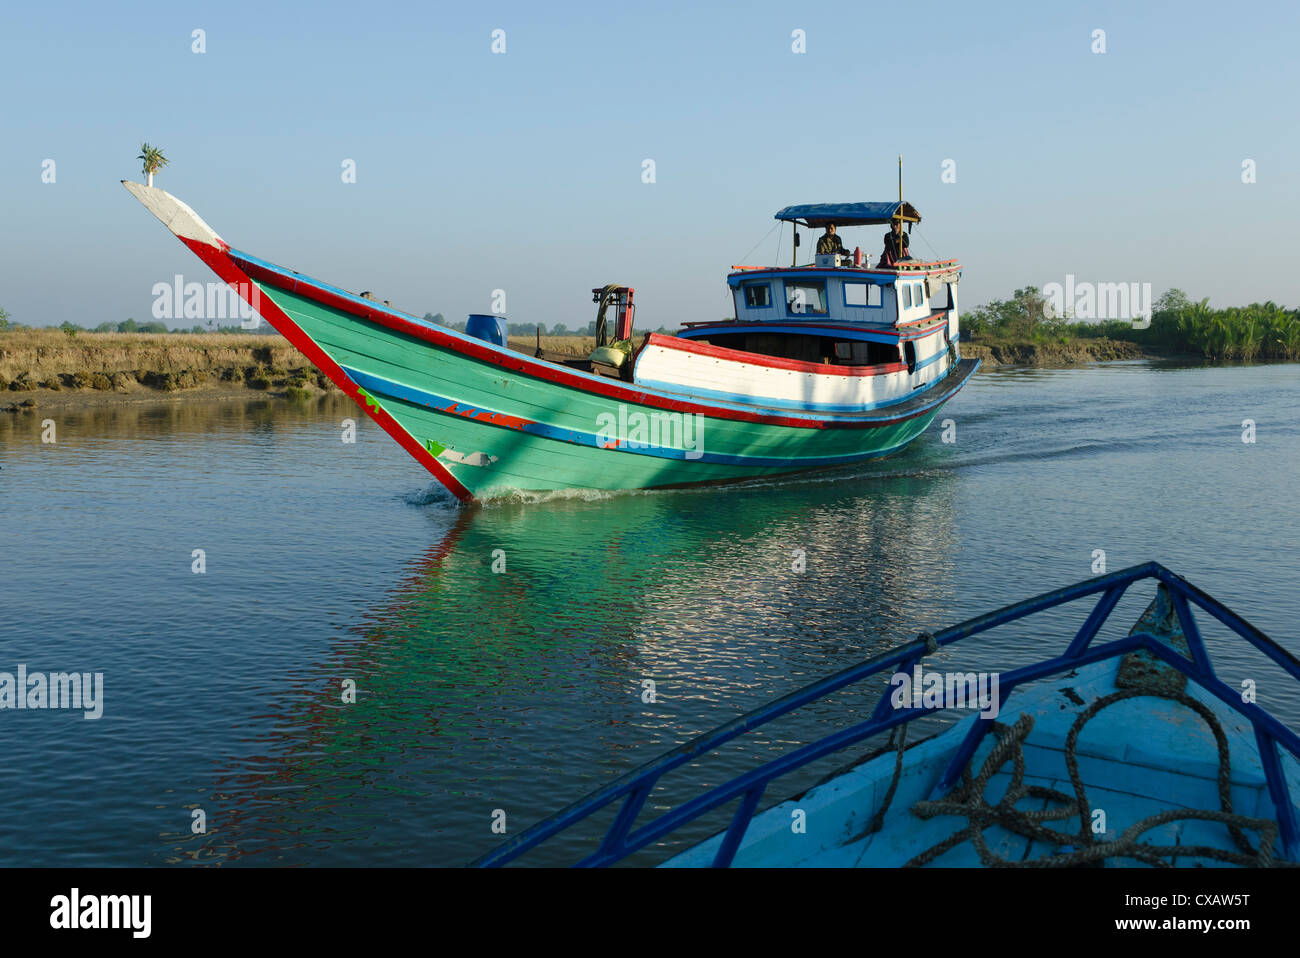 Boat on waterway in the Irrawaddy delta, Myanmar (Burma), Asia - Stock Image